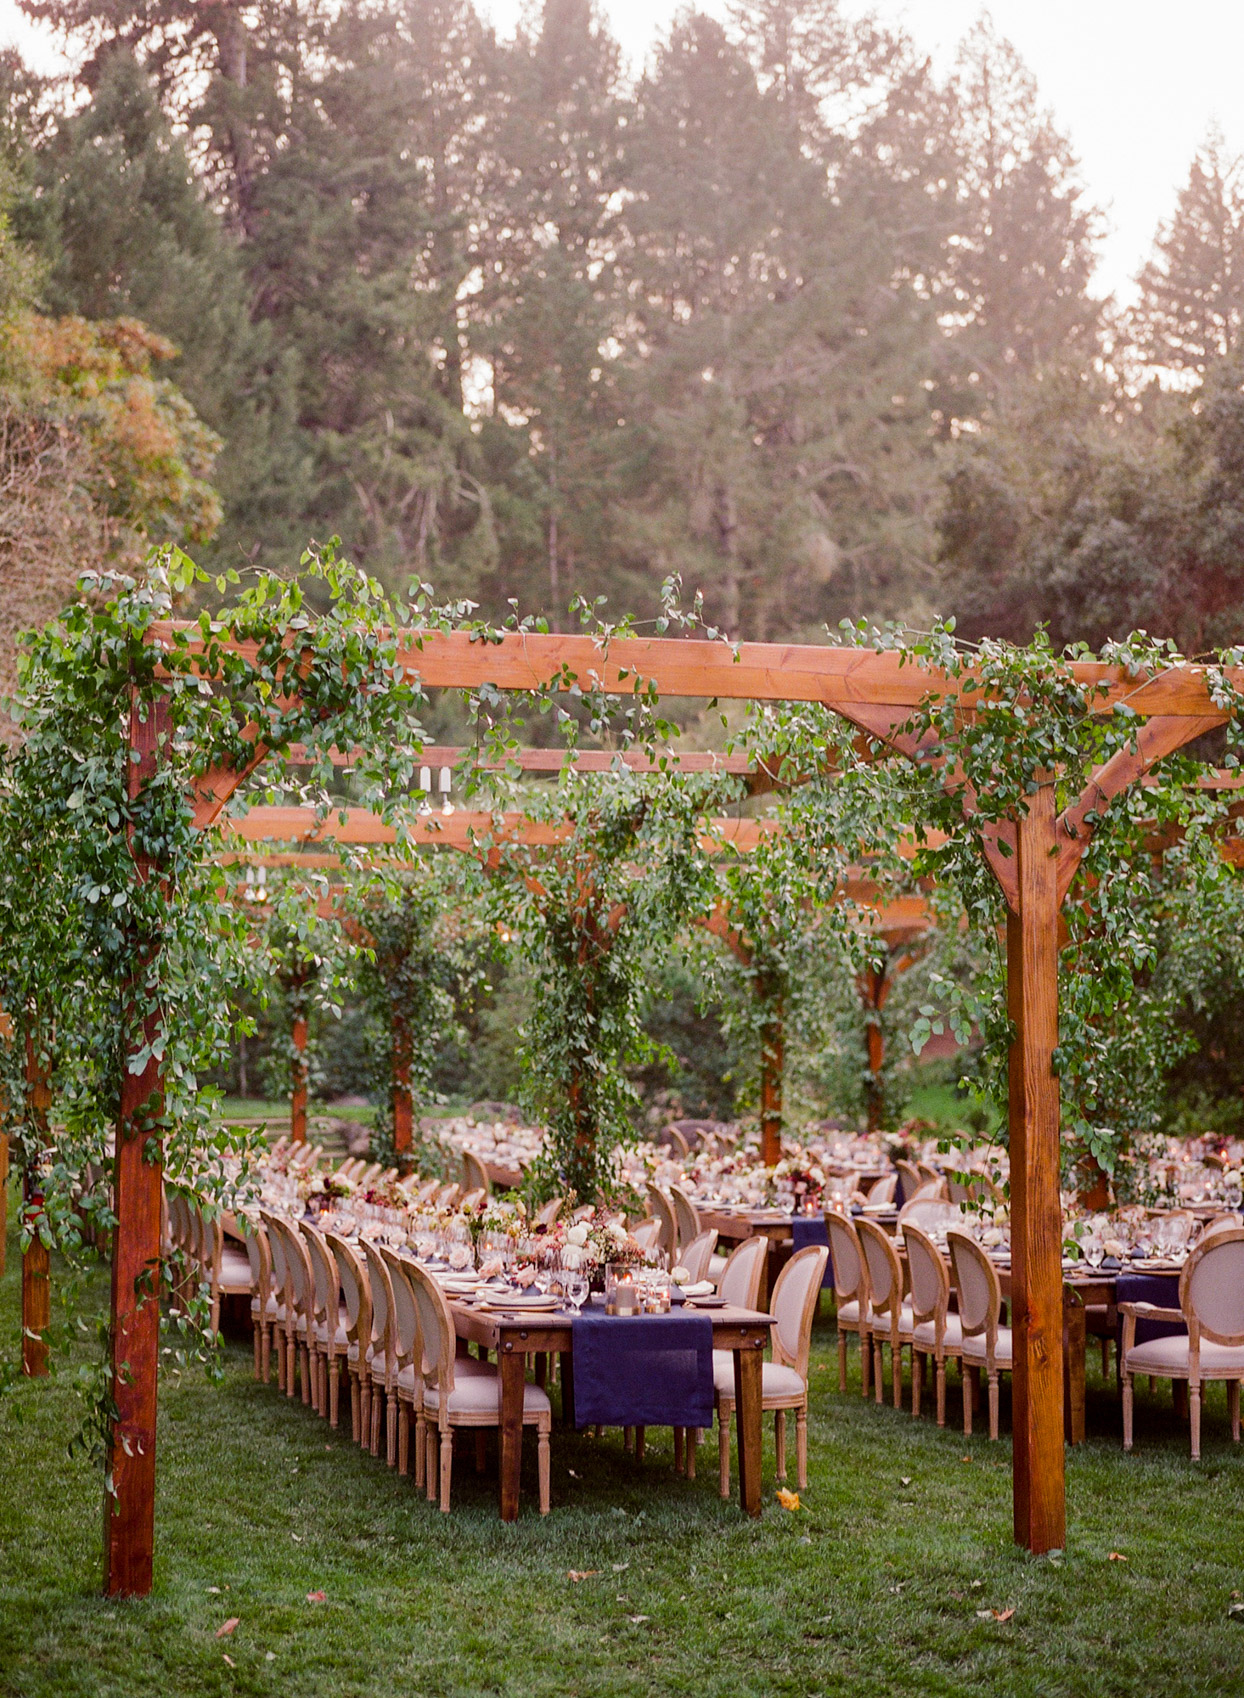 elegant outdoor wedding reception underneath wooden structure with vining greenery